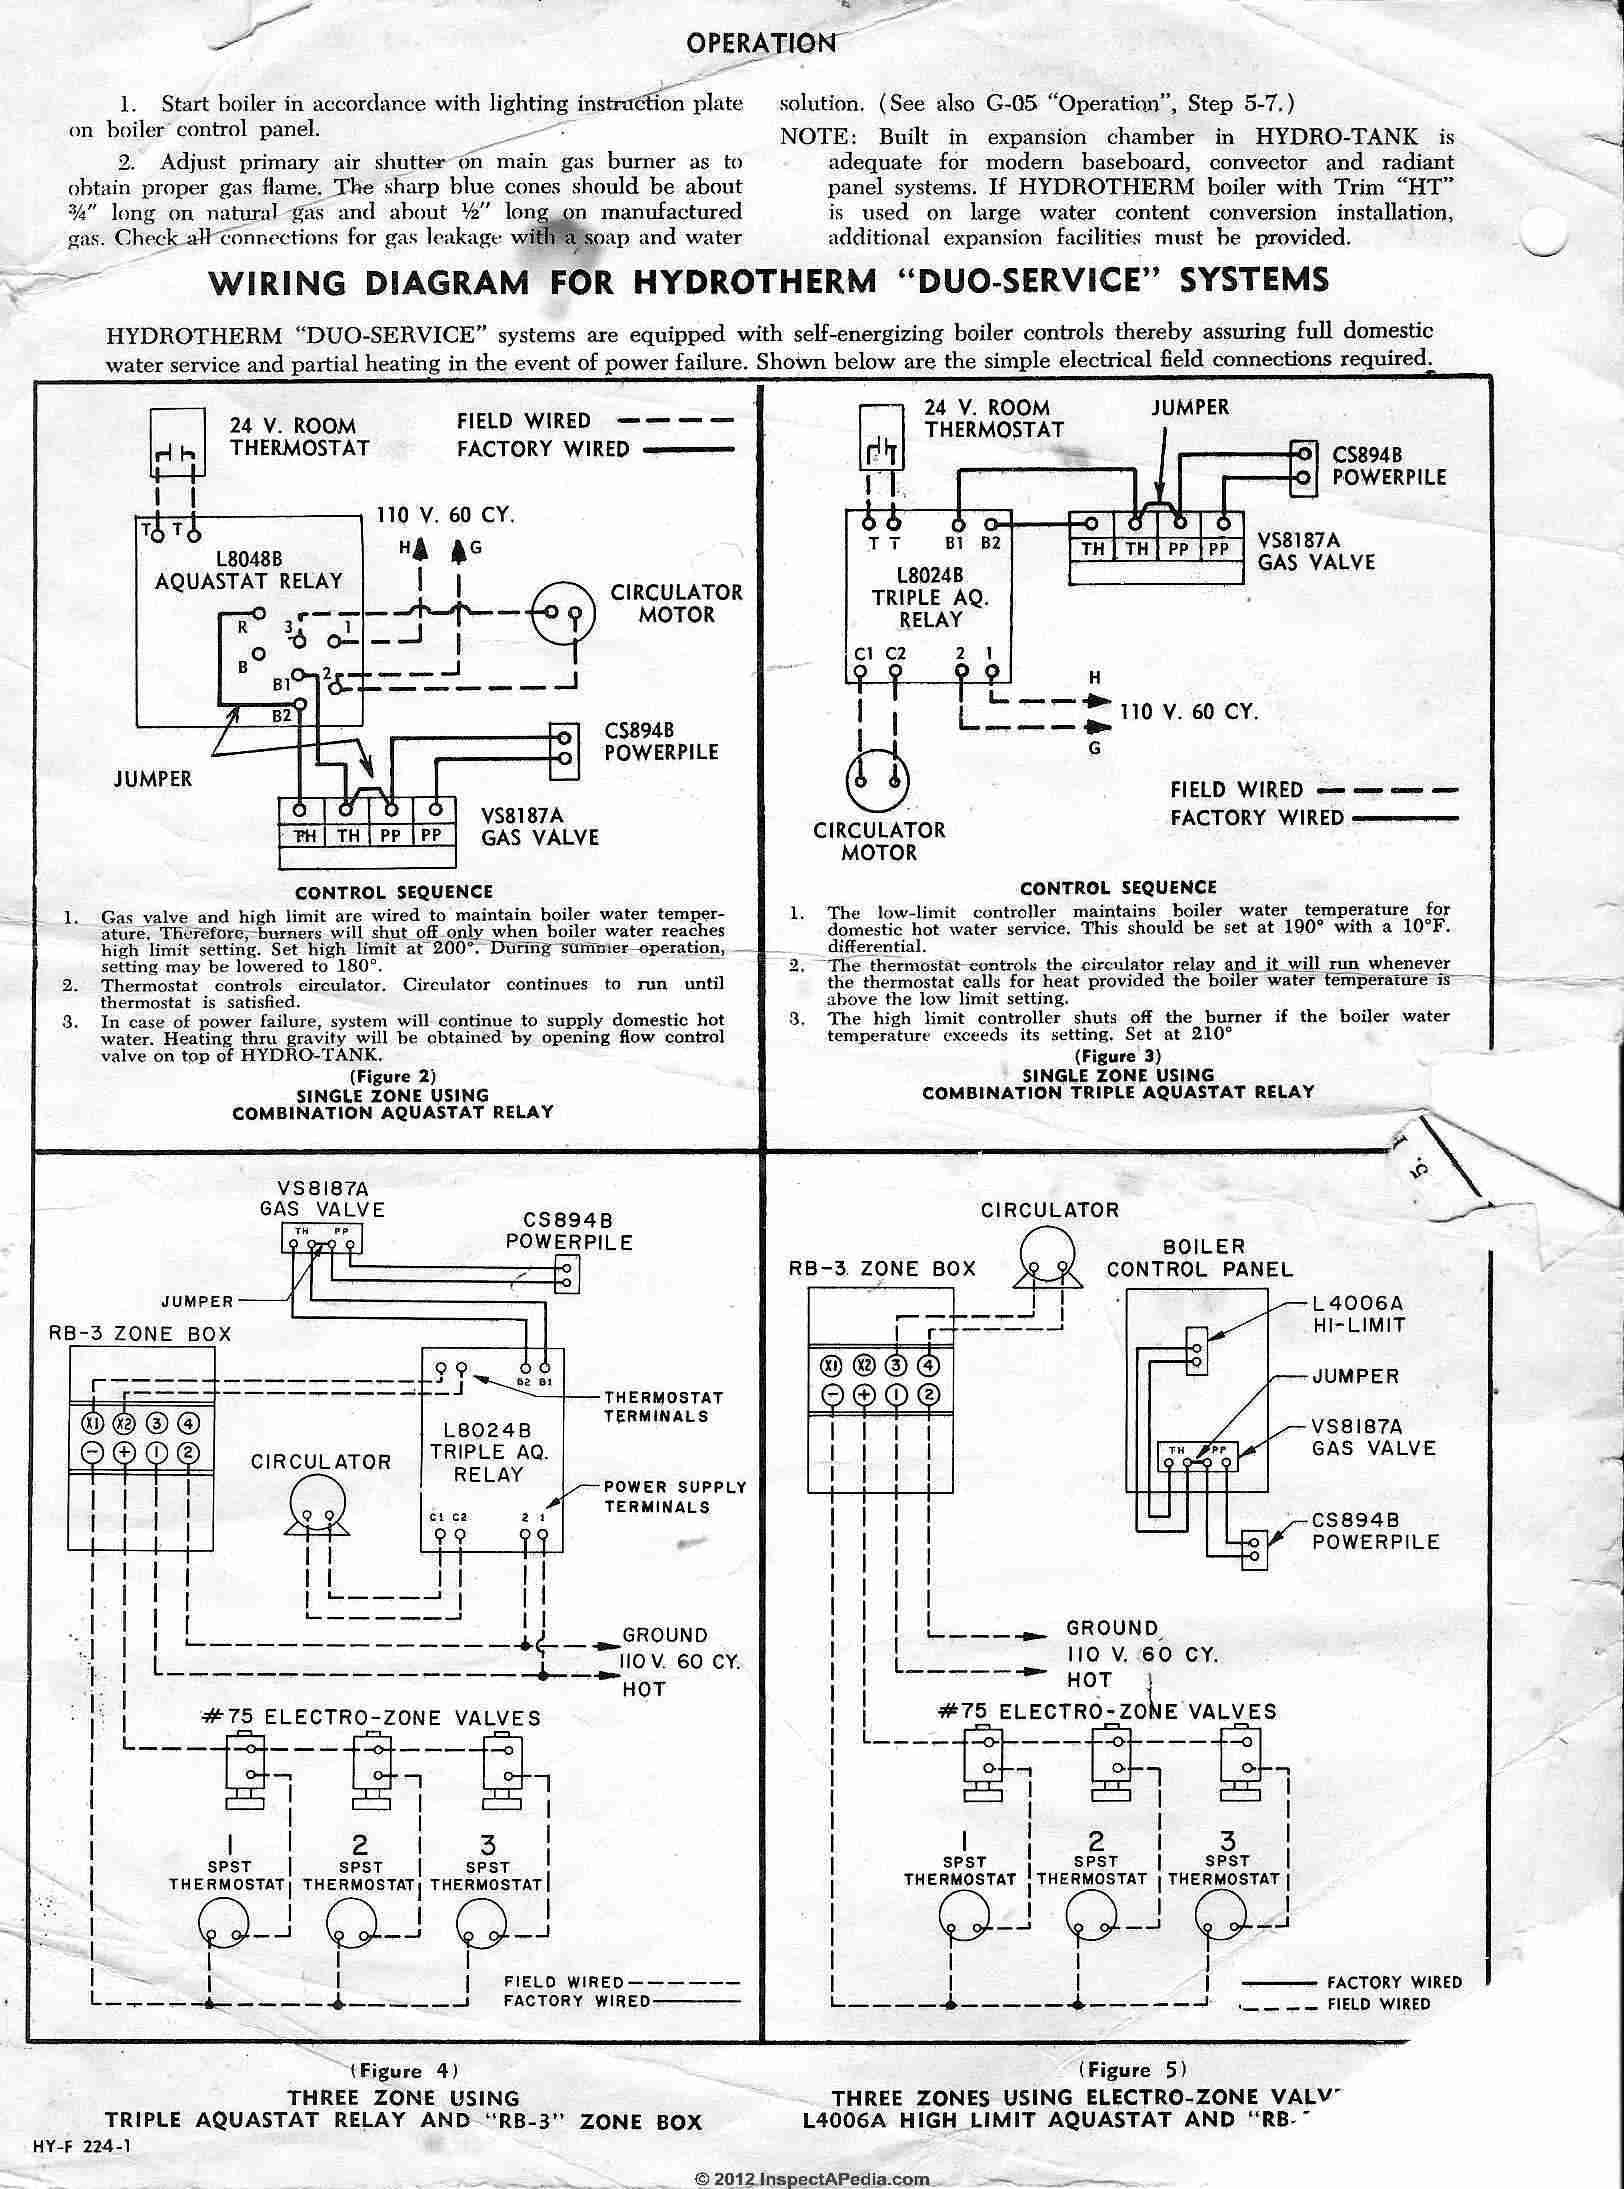 L8024B_Aquastat_0422_DJFcs honeywell l7224 wiring diagram honeywell l7224u aquastat wiring honeywell pressure switch wiring diagram at reclaimingppi.co